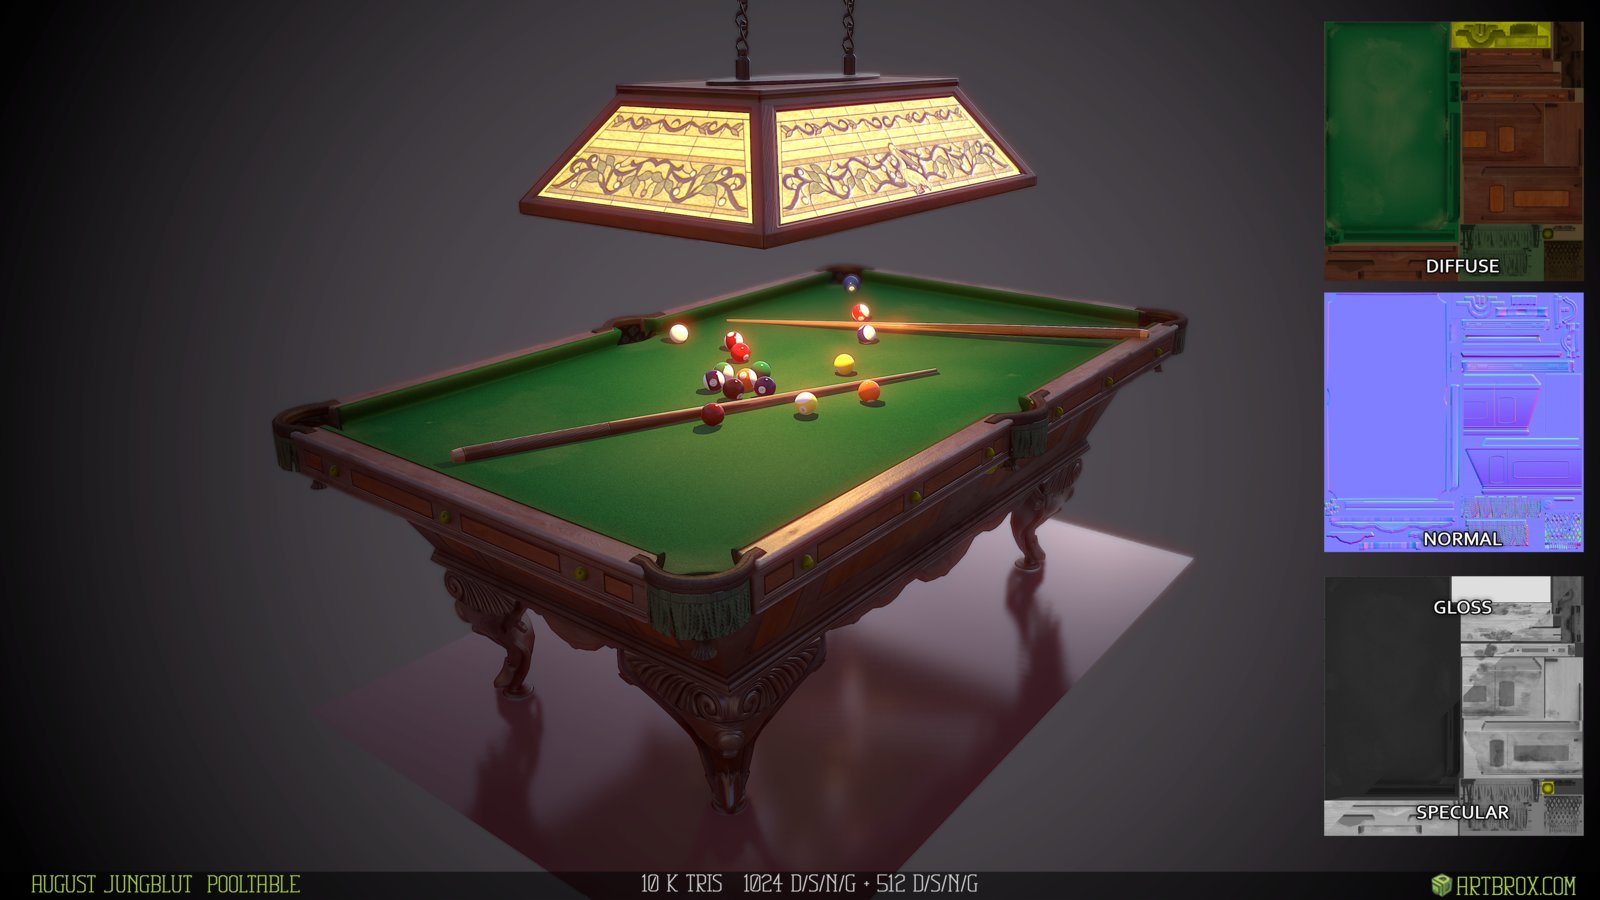 August Jungblut pool table